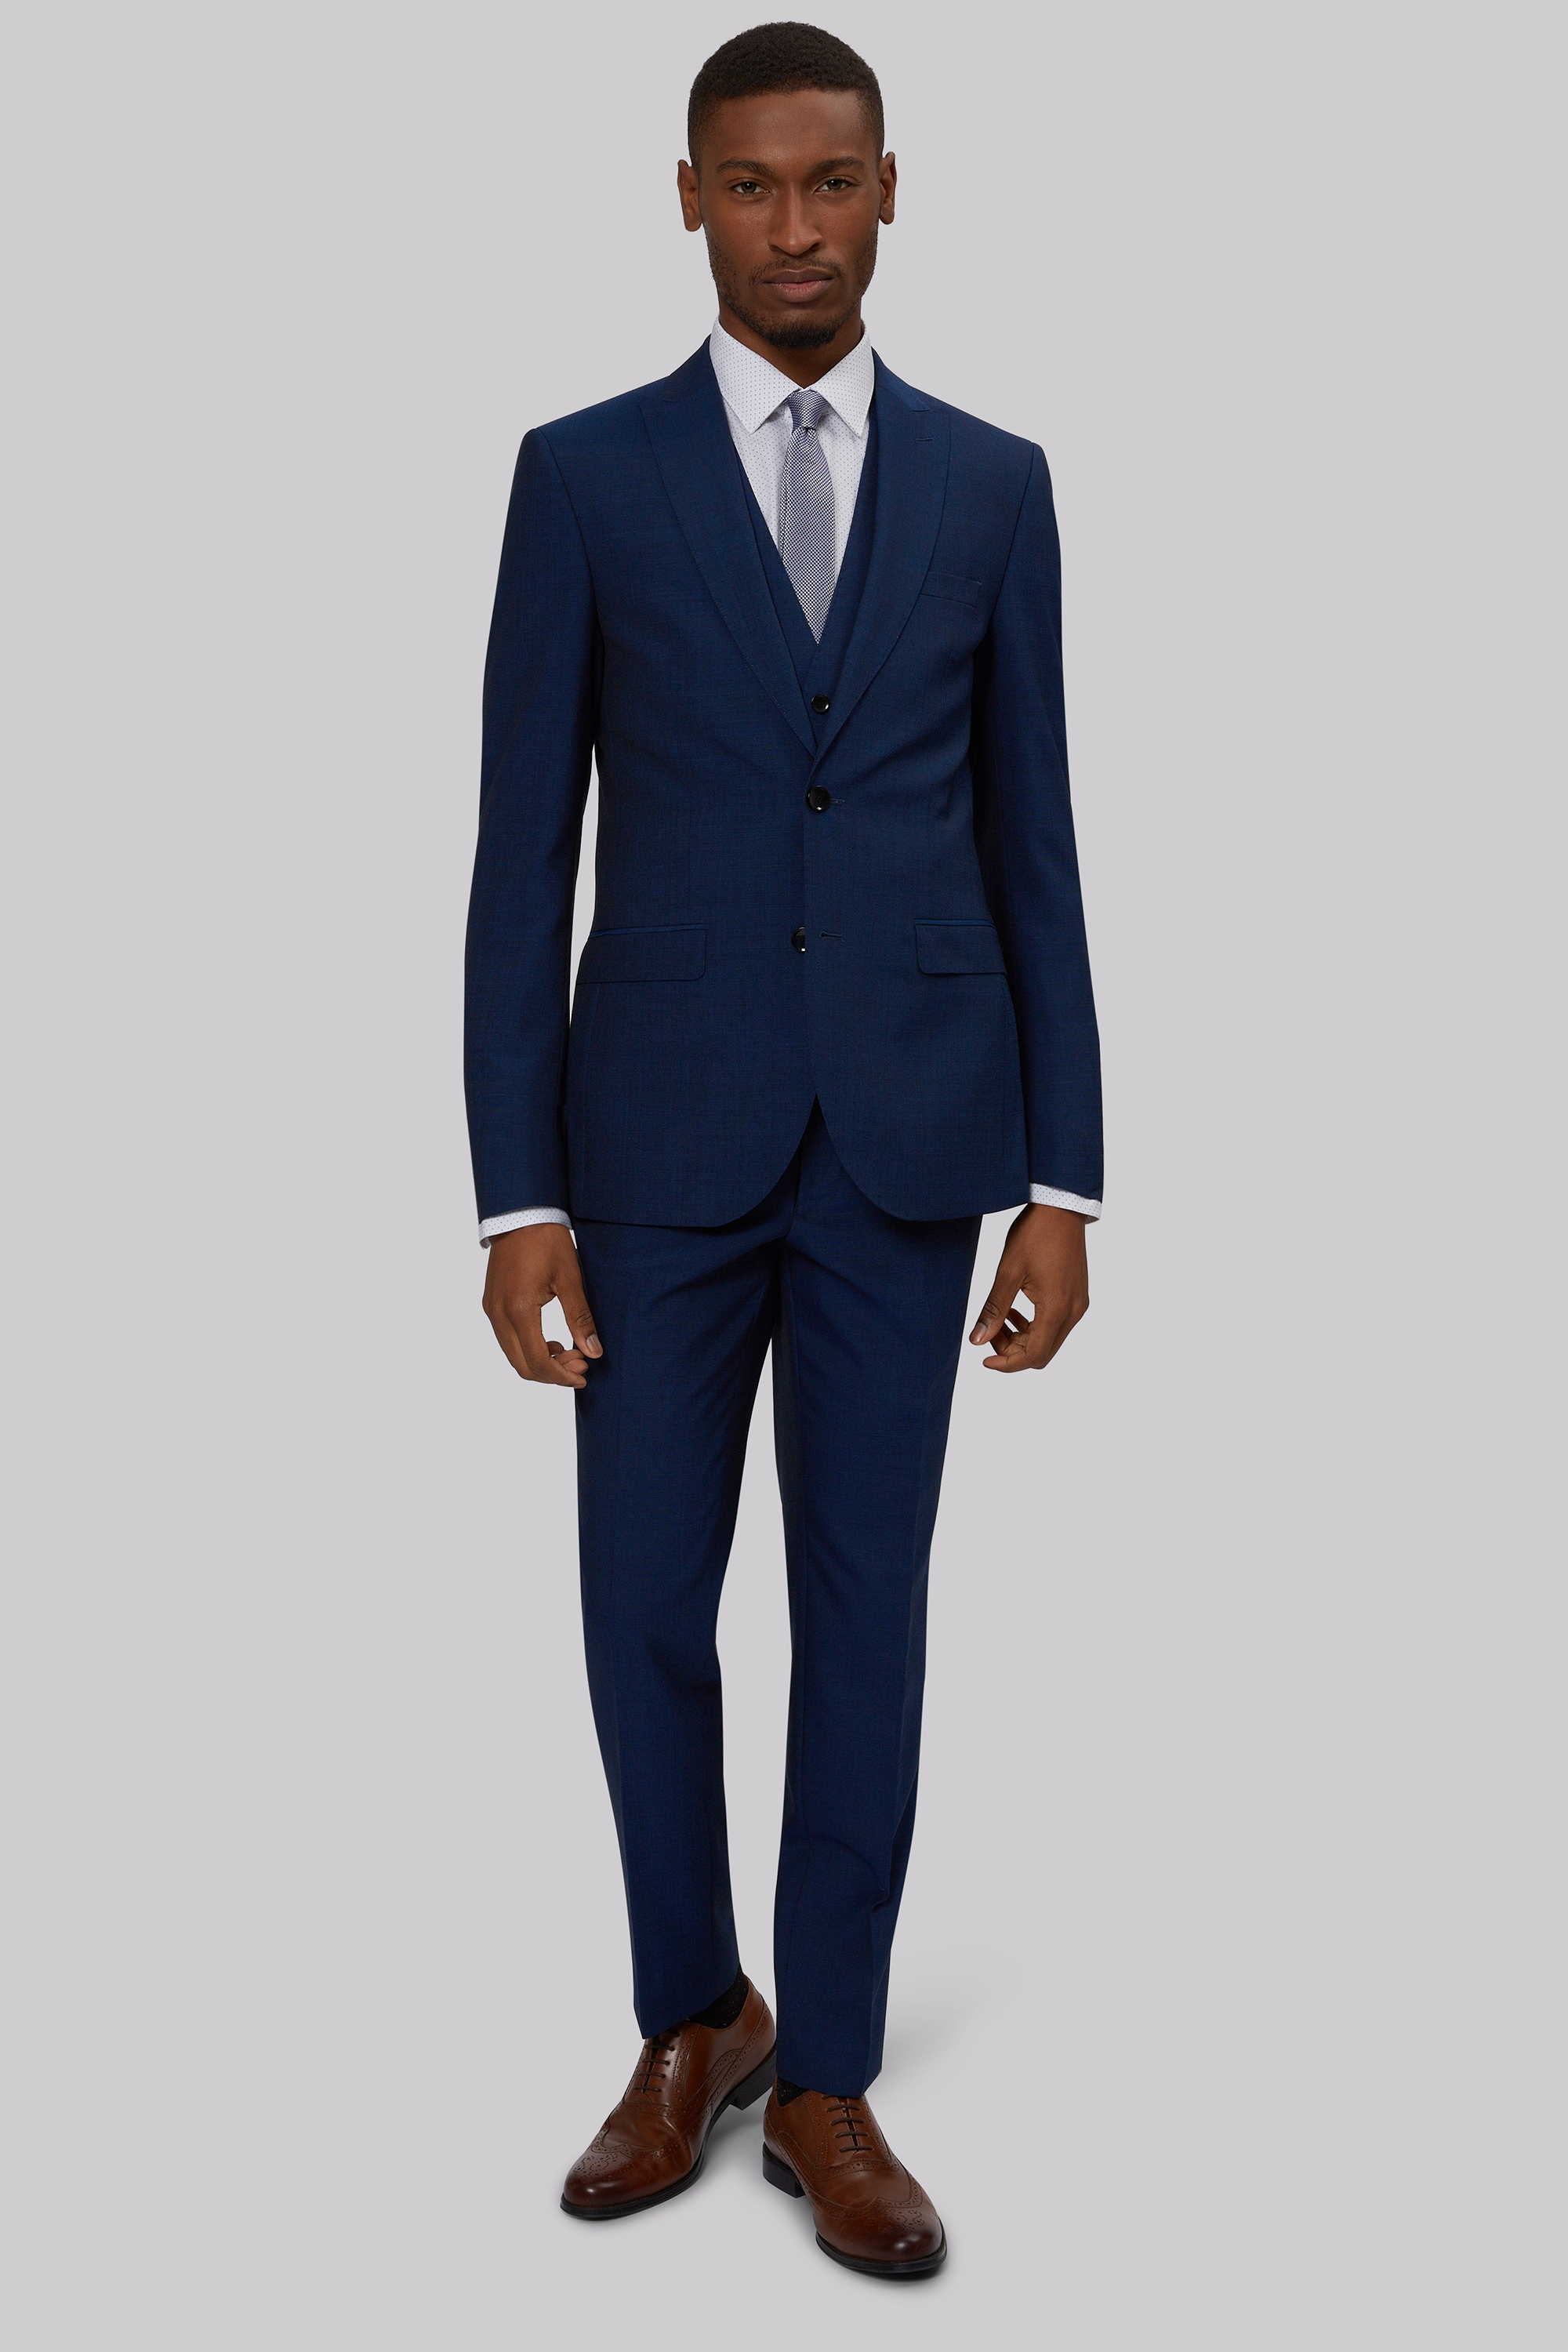 French Connection Suits For Men | Moss Bros.